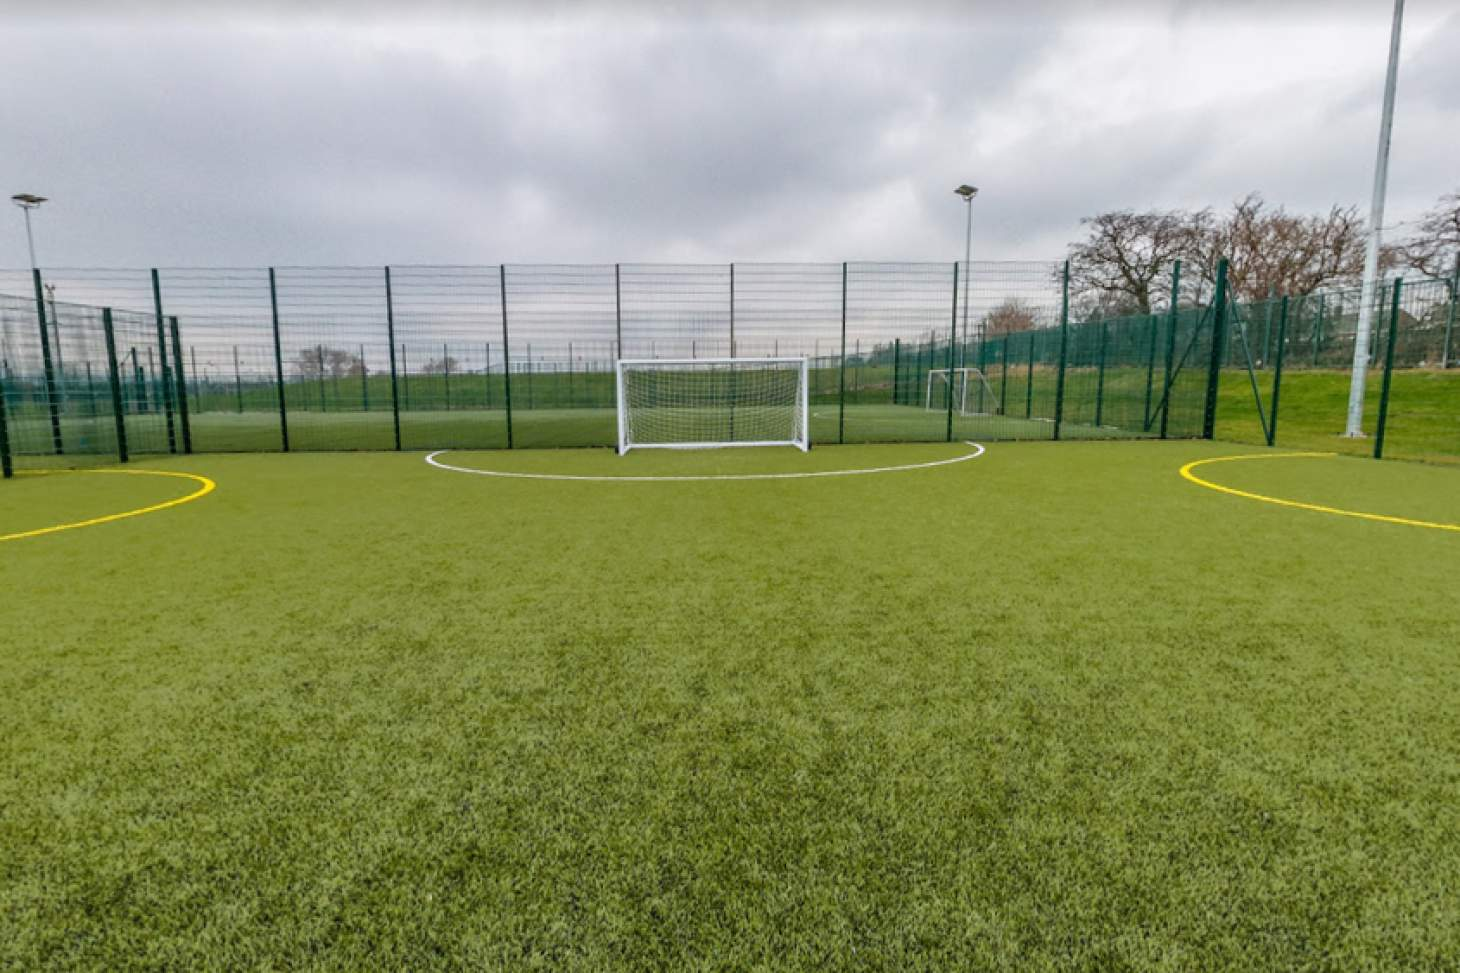 West Denton Leisure Centre 5 a side | 3G Astroturf football pitch